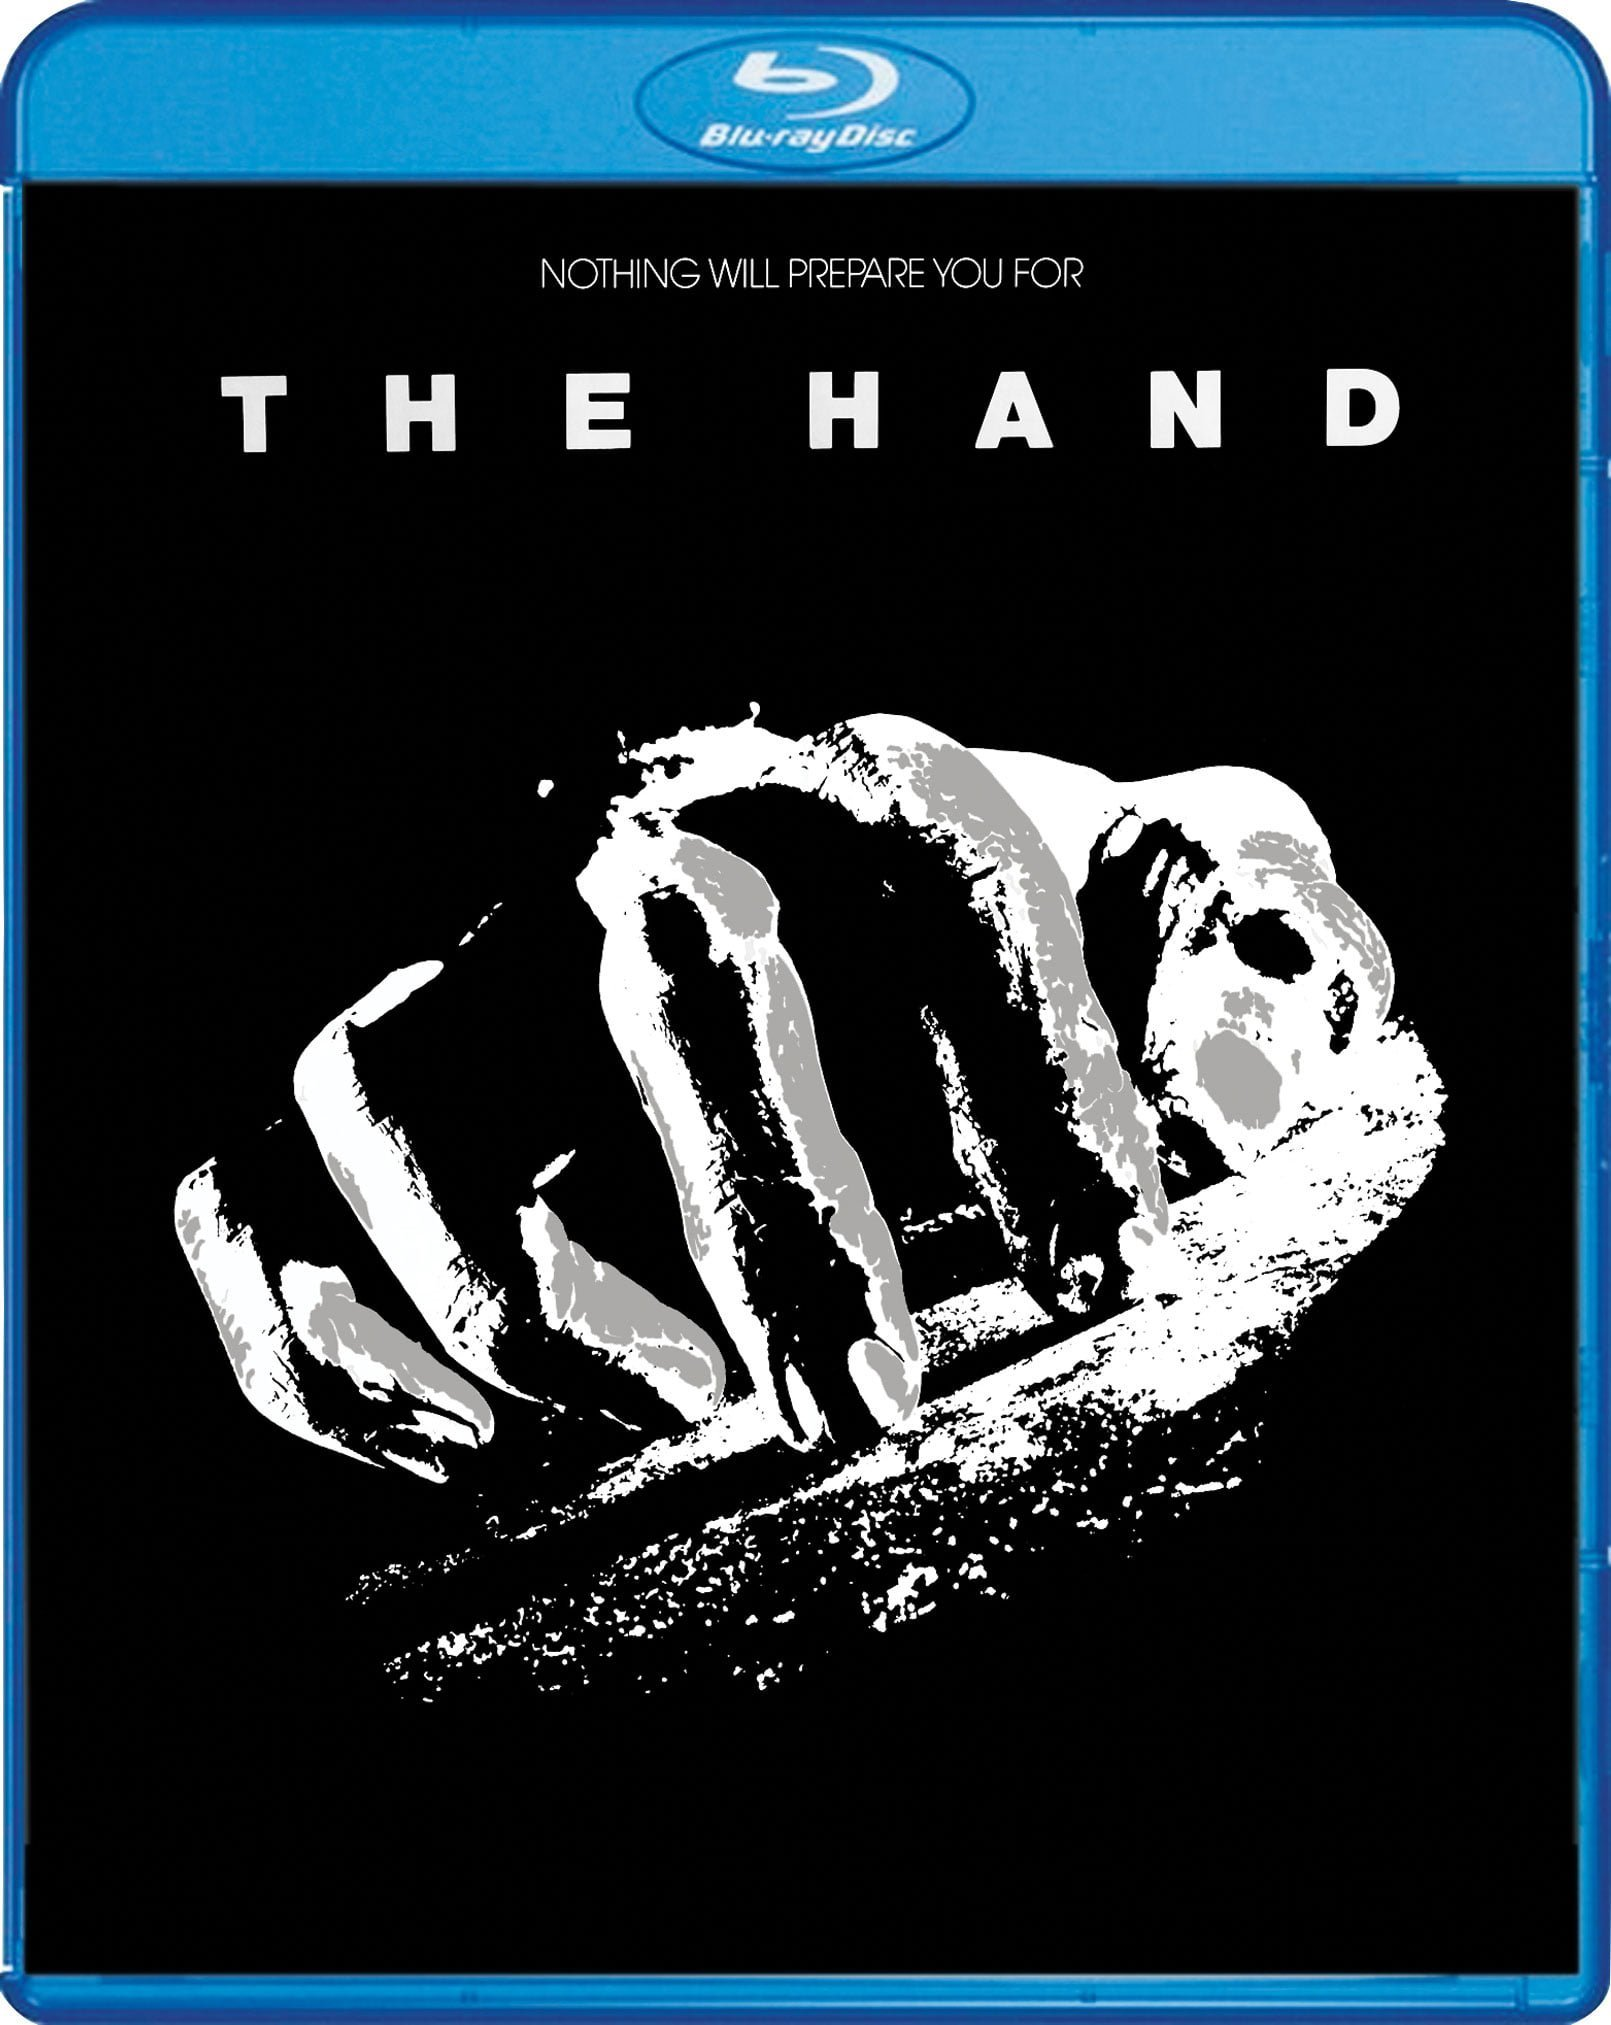 OLIVER STONE'S 'THE HAND' NOW AVAILABLE FROM SHOUT! FACTORY